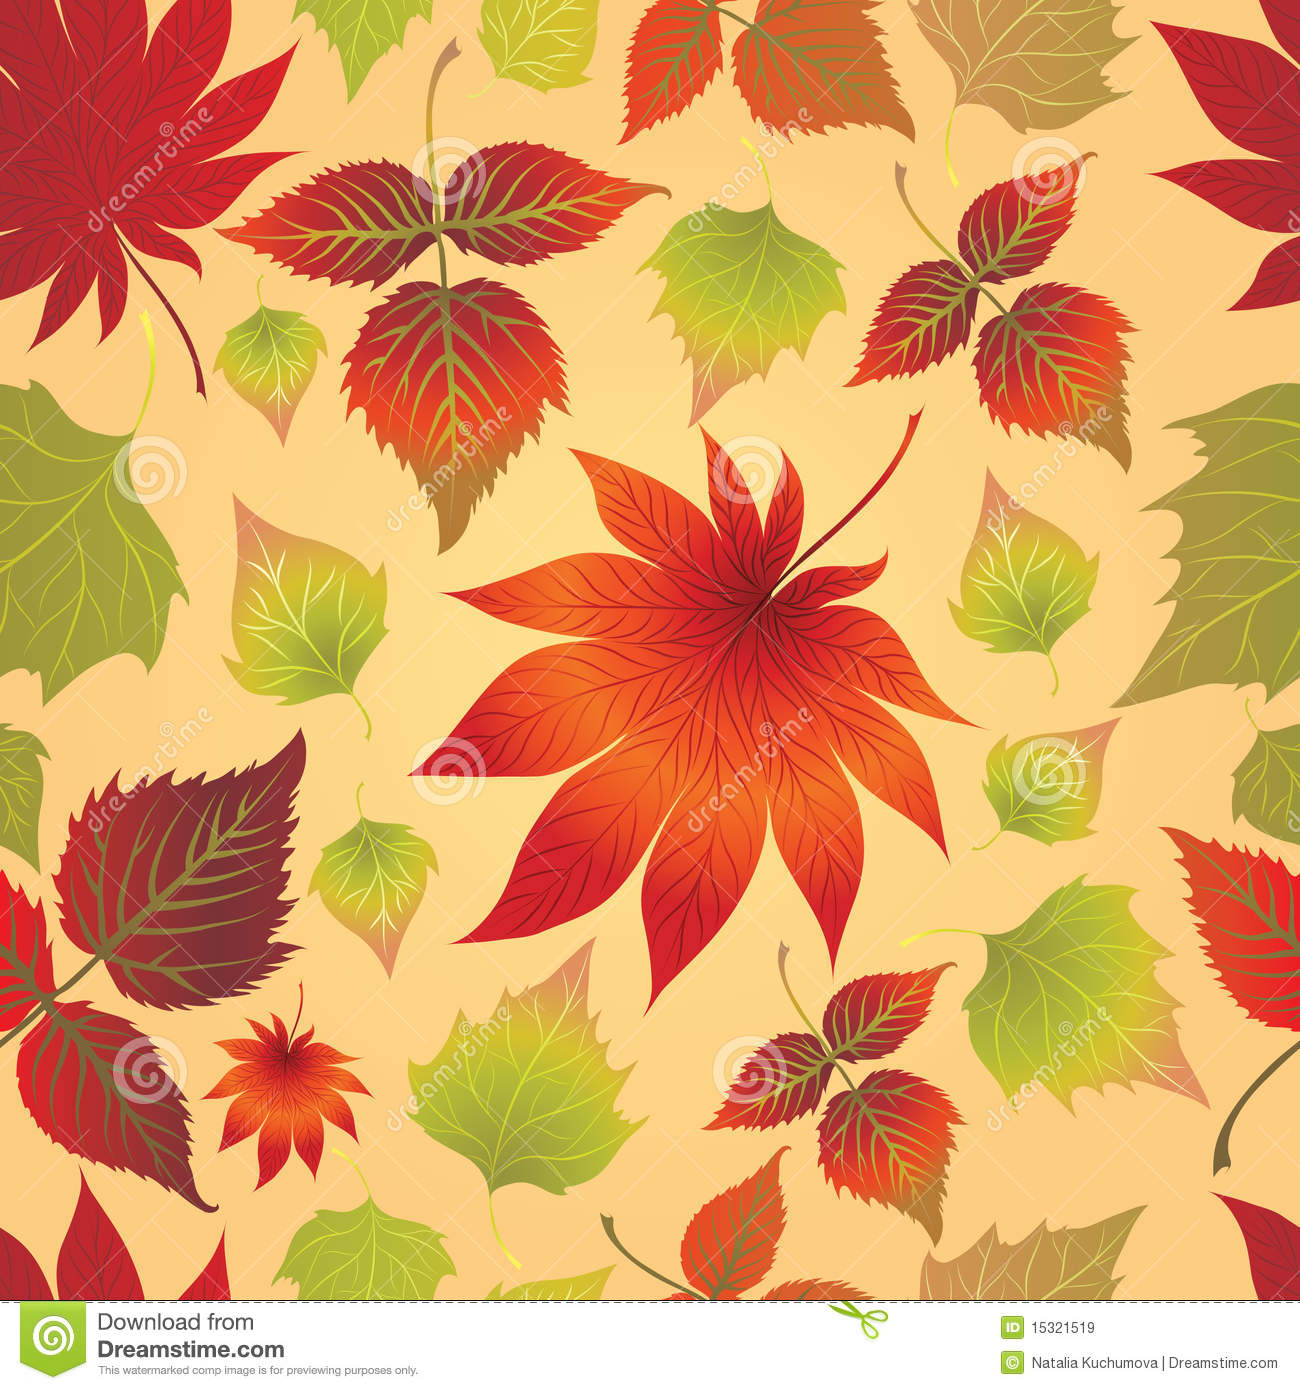 Seamless leaves background. Thanksgiving